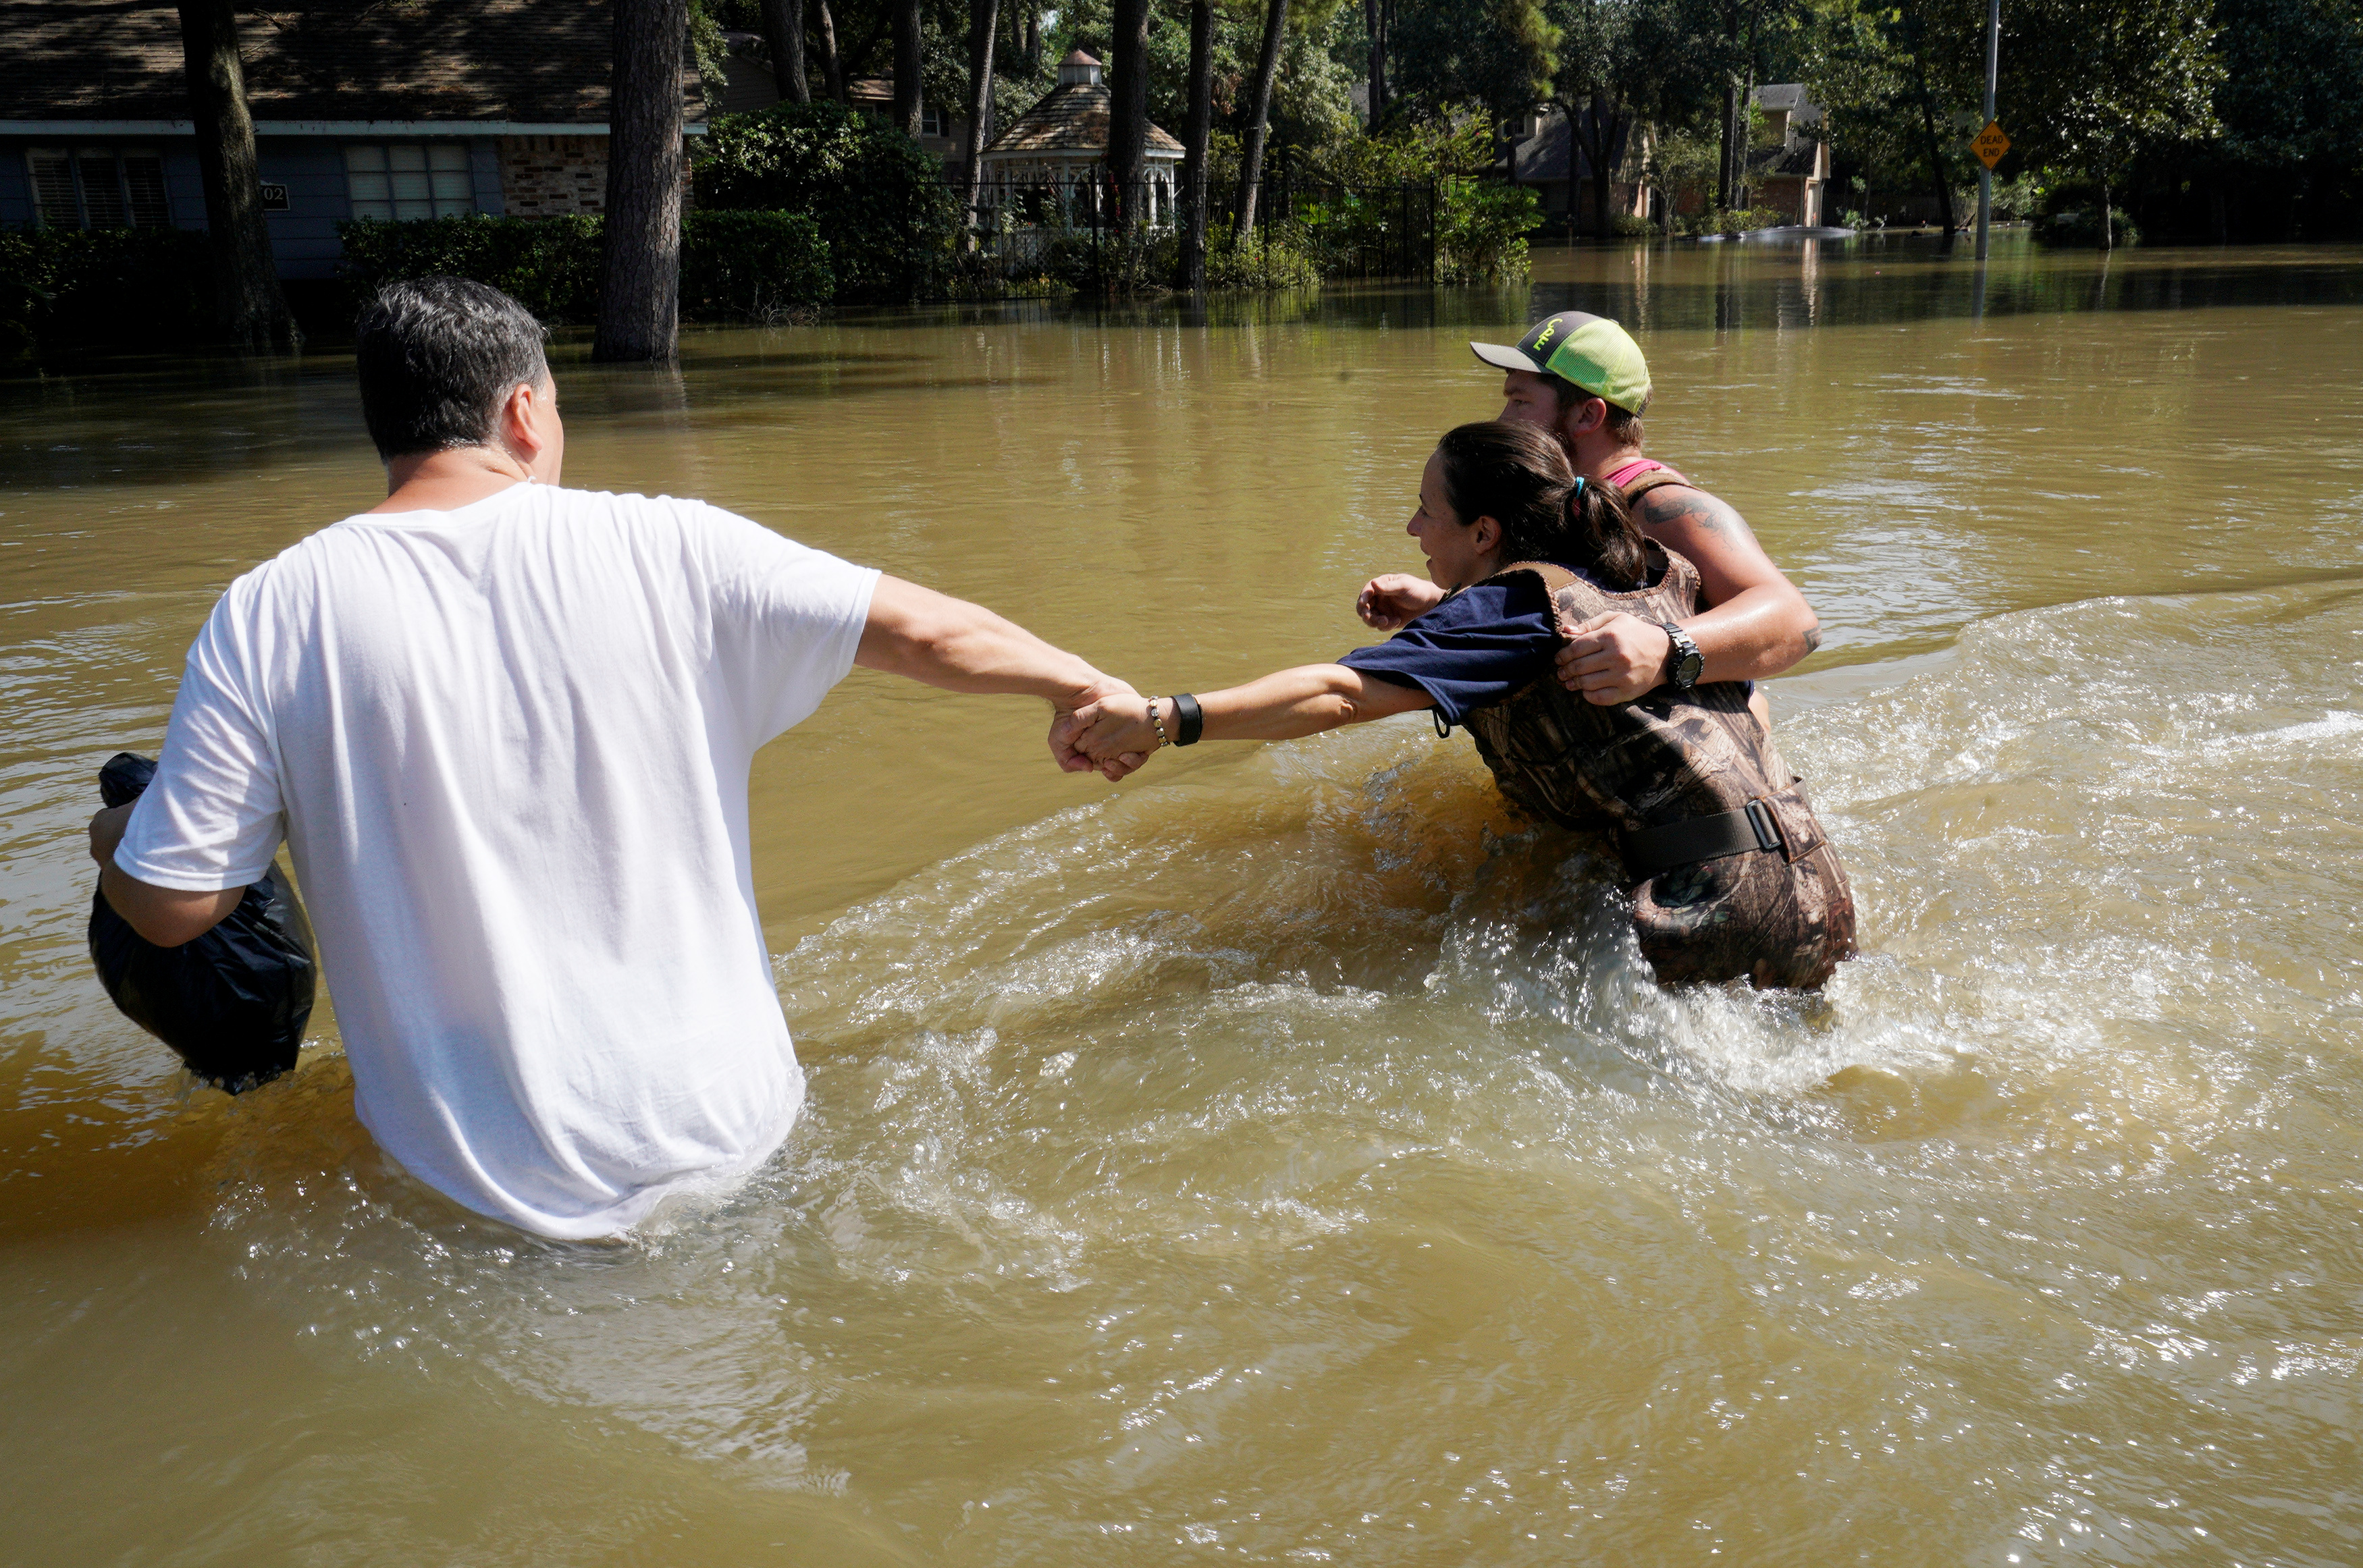 Melissa Ramirez (C) struggles against the current flowing down a flooded street helped by Edward Ramirez (L) and Cody Collinsworth as she tried to return to her home for the first time since Harvey floodwaters arrived in Houston, Texas on Sept. 1, 2017. (REUTERS/Rick Wilking)